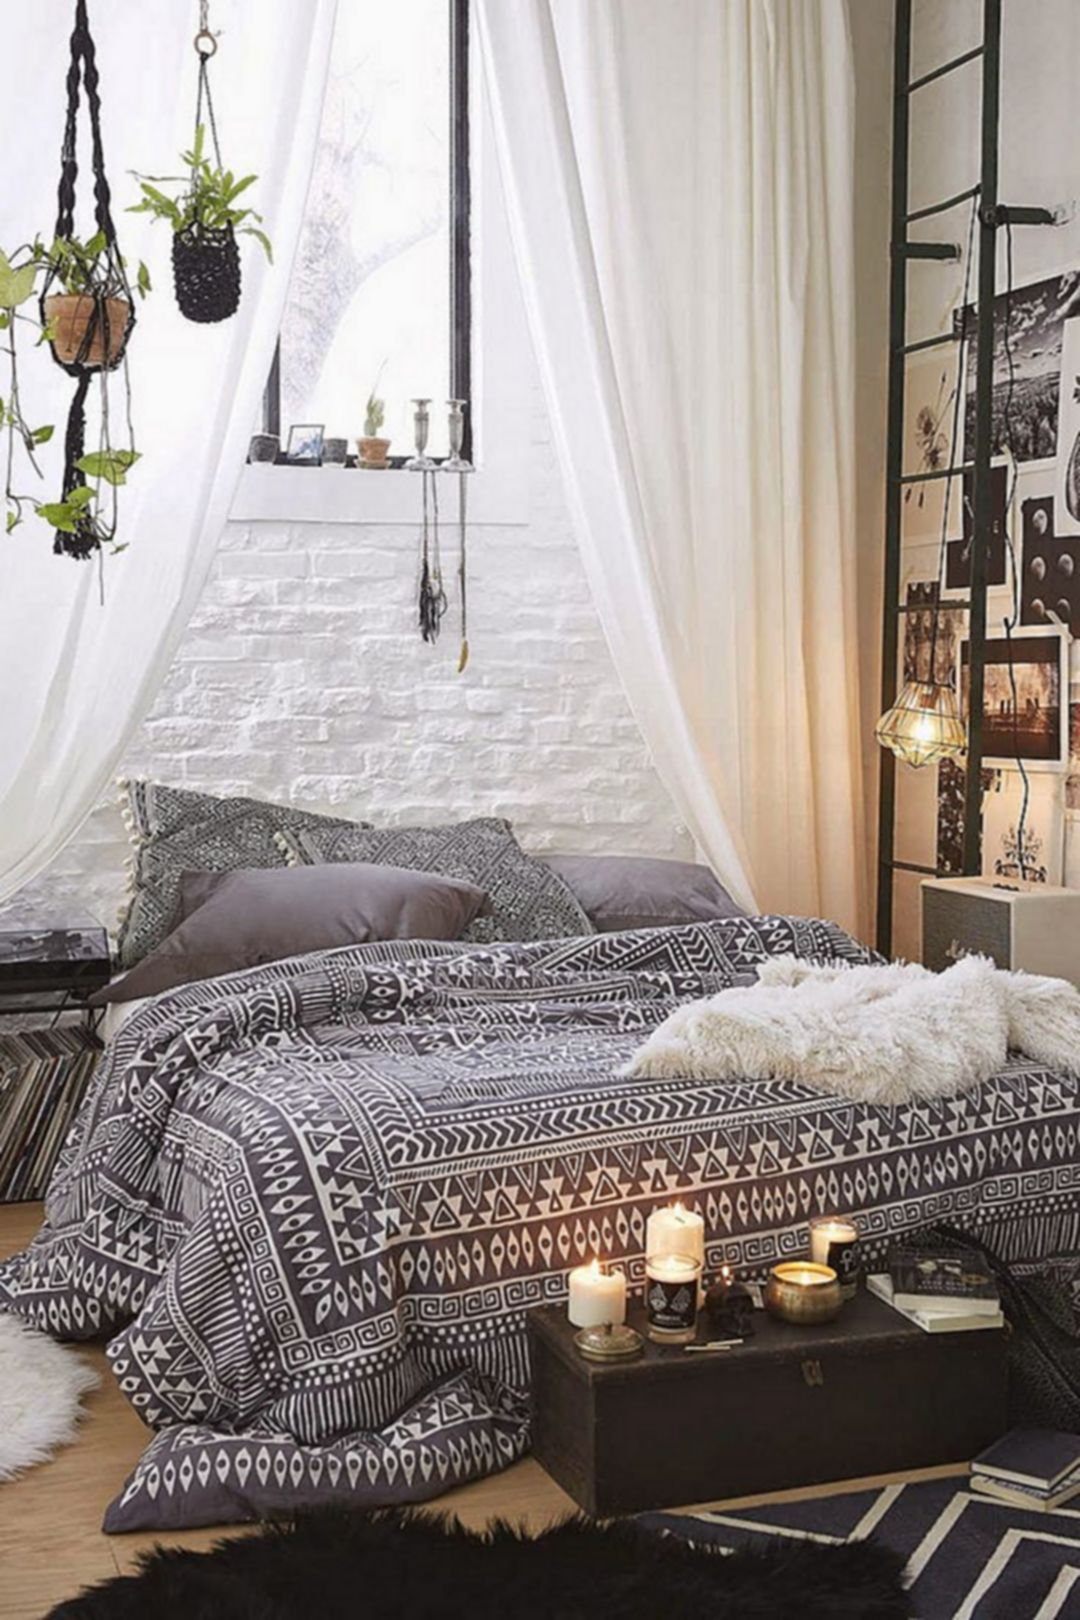 bohemian decorating interior style ideas for your house diy home